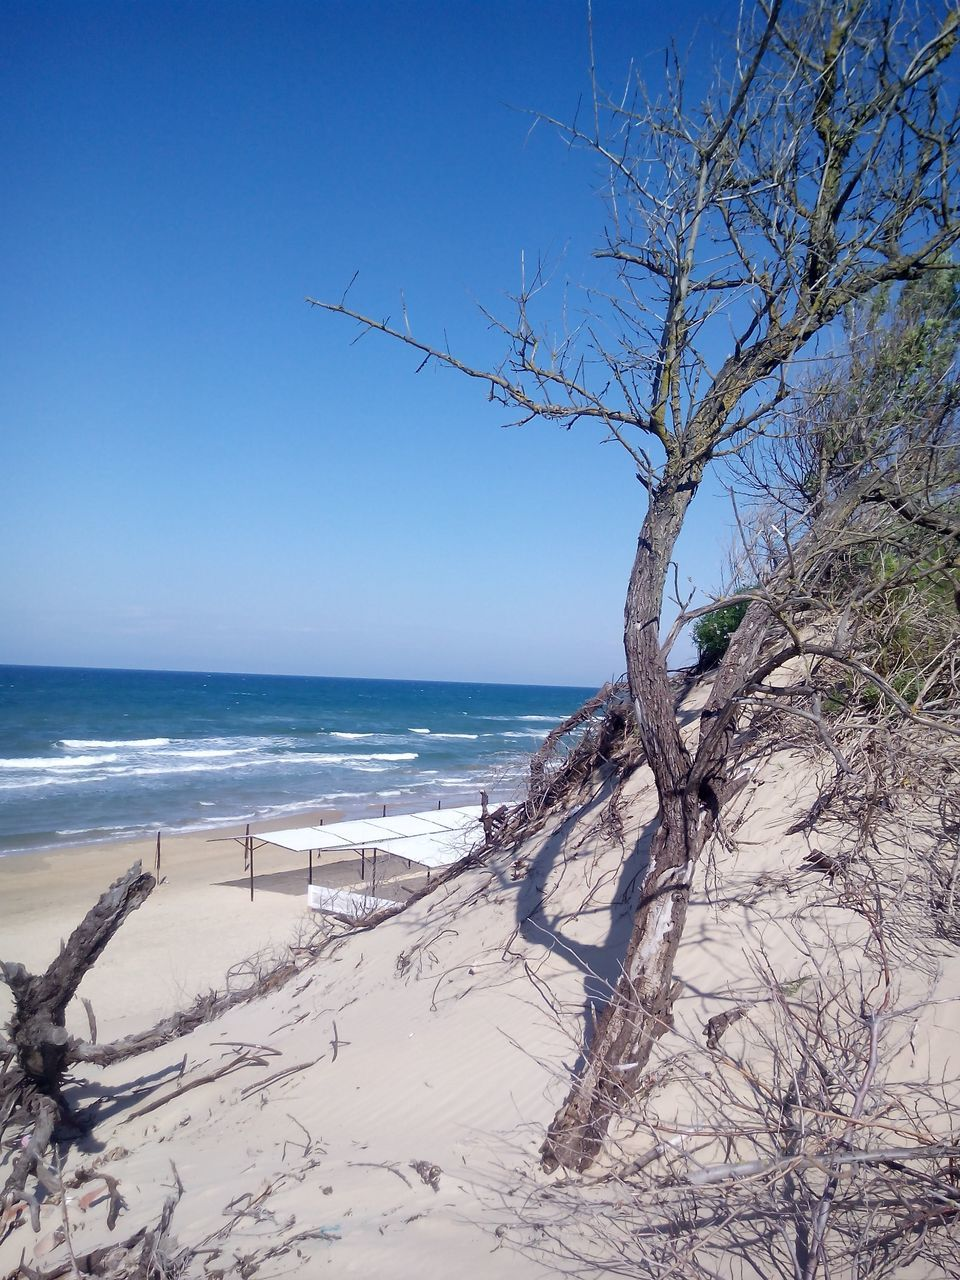 sea, beach, horizon over water, beauty in nature, nature, sand, tranquility, tranquil scene, scenics, bare tree, outdoors, day, water, branch, tree, clear sky, sky, no people